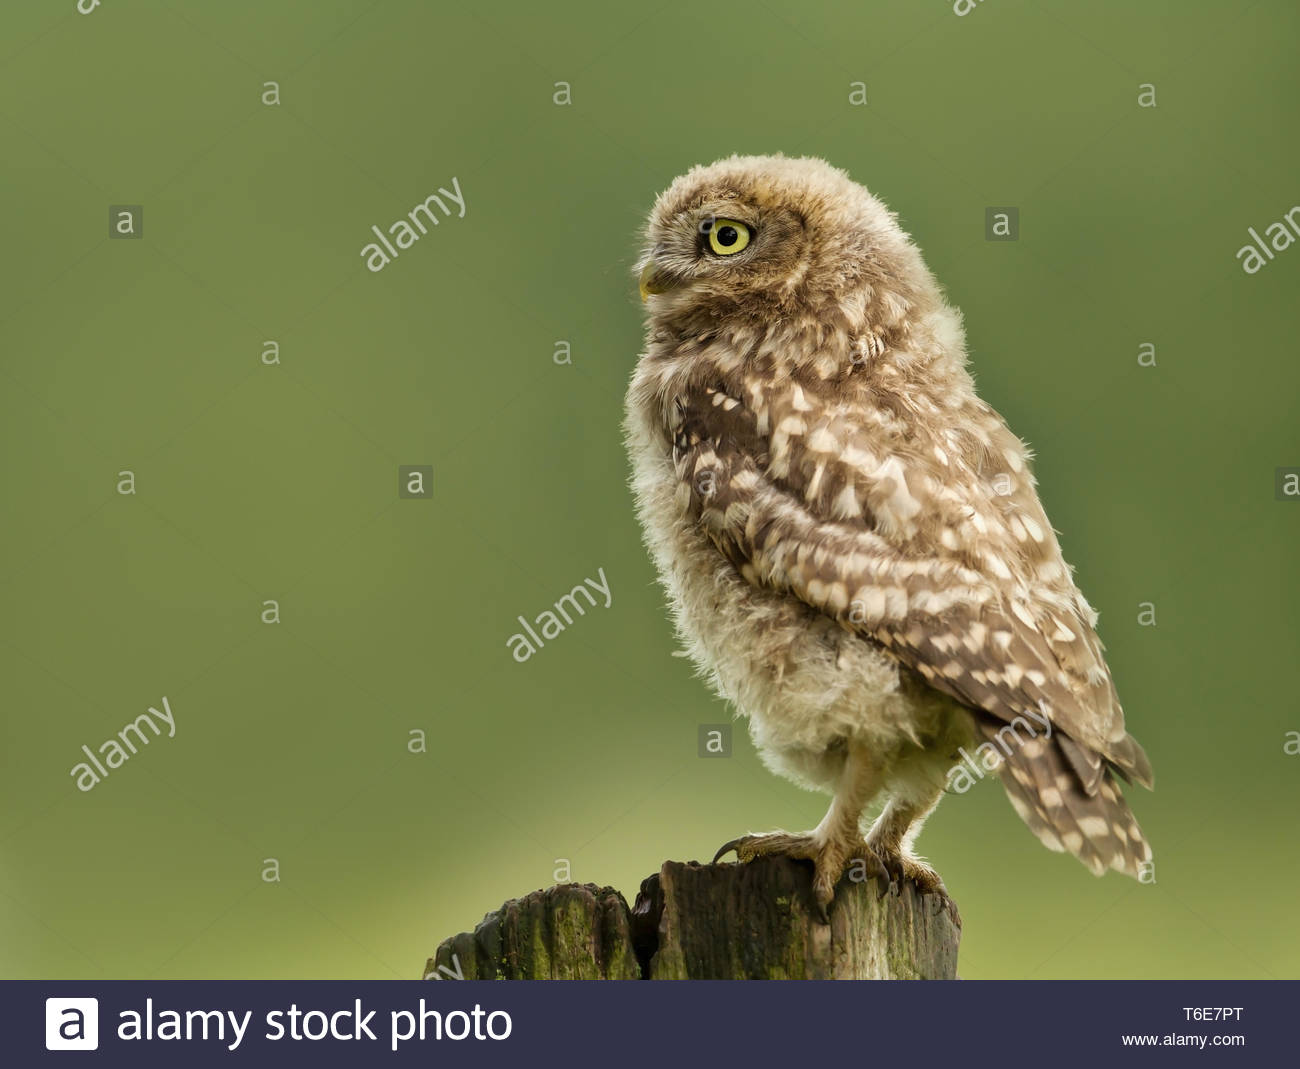 Weihnachtsmarkt Owl.Baby Little Owl Stock Photos Baby Little Owl Stock Images Alamy